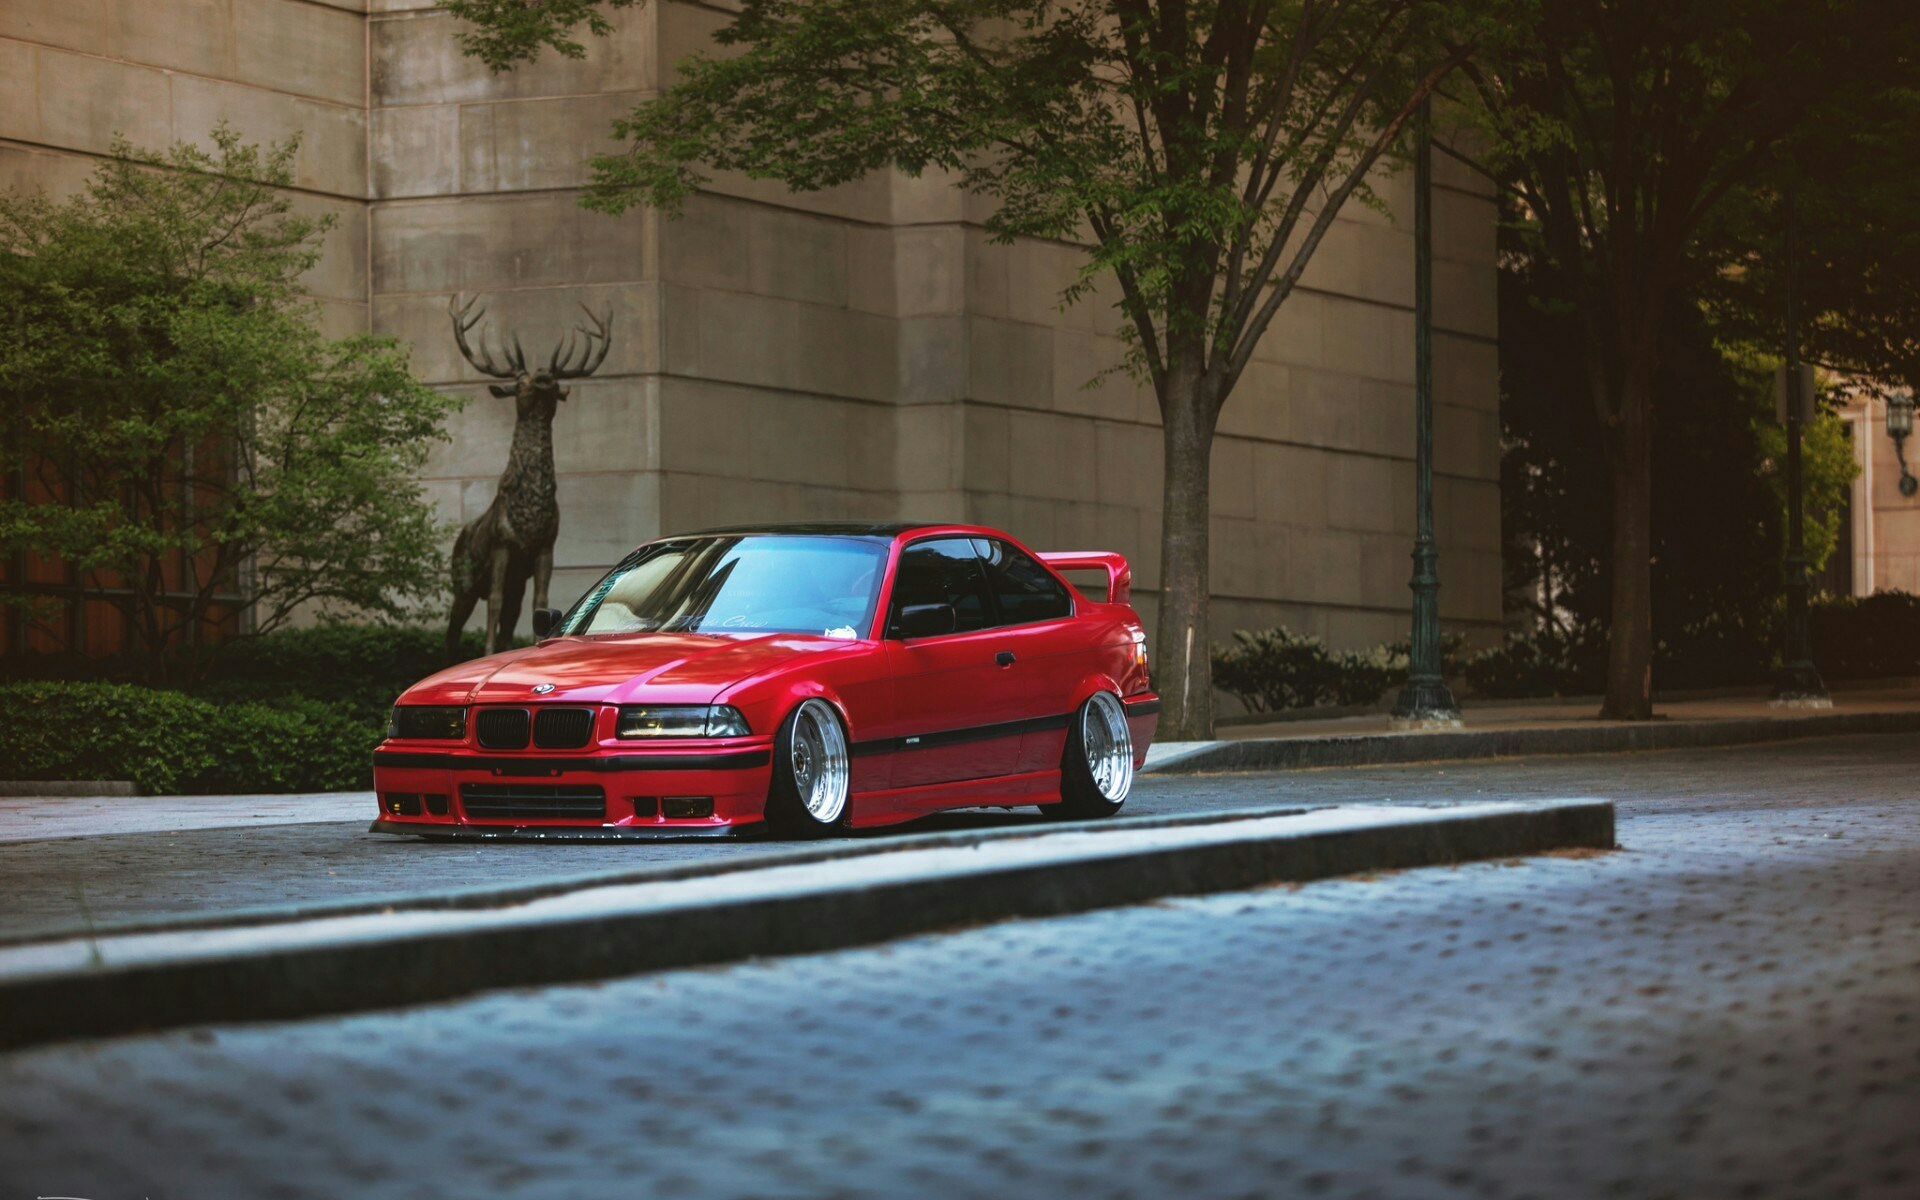 Bmw E36 M3 Red Devil Mpower Cars Image By Yasar